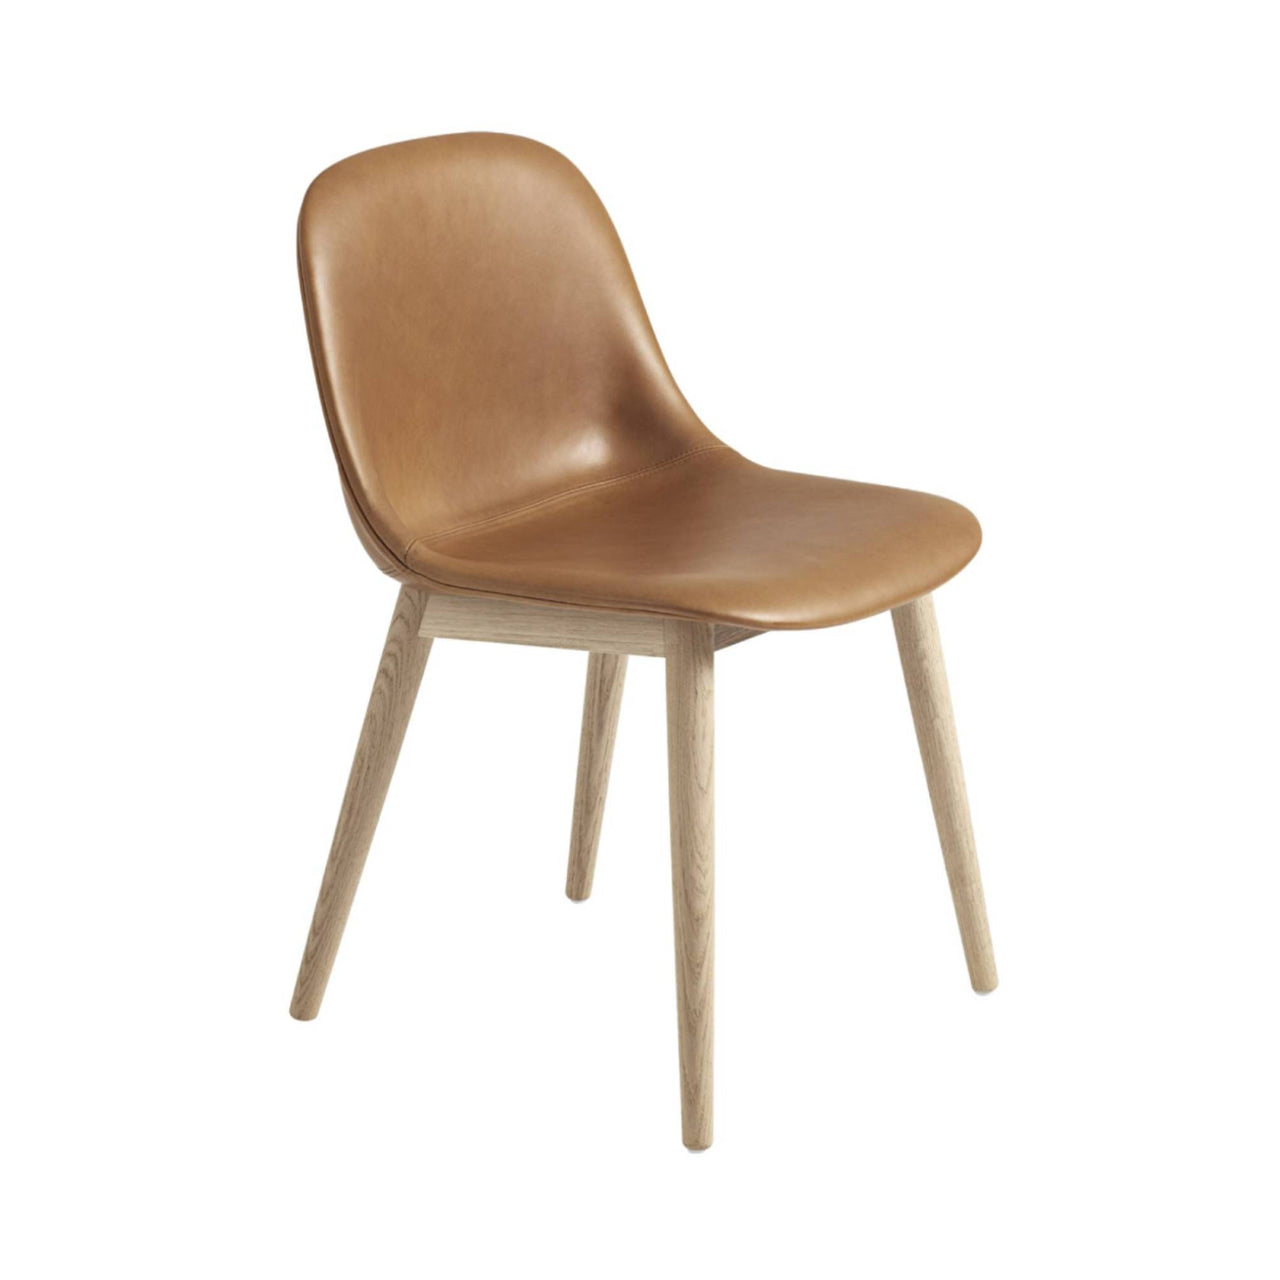 Fiber Side Chair: Wood Base Upholstered